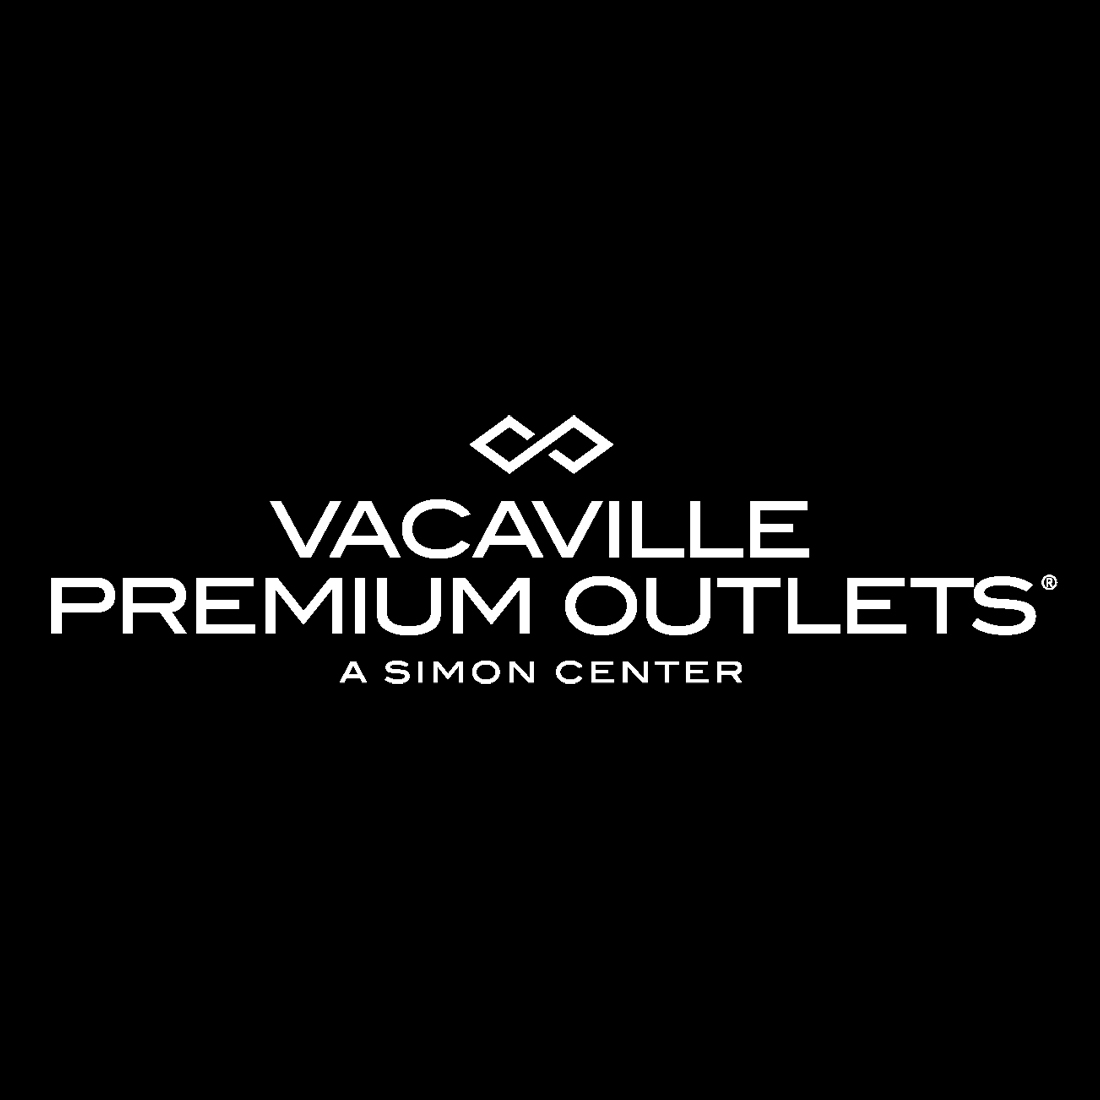 Vacaville Outlets Map >> Vacaville Premium Outlets 321 Nut Tree Rd Vacaville Ca